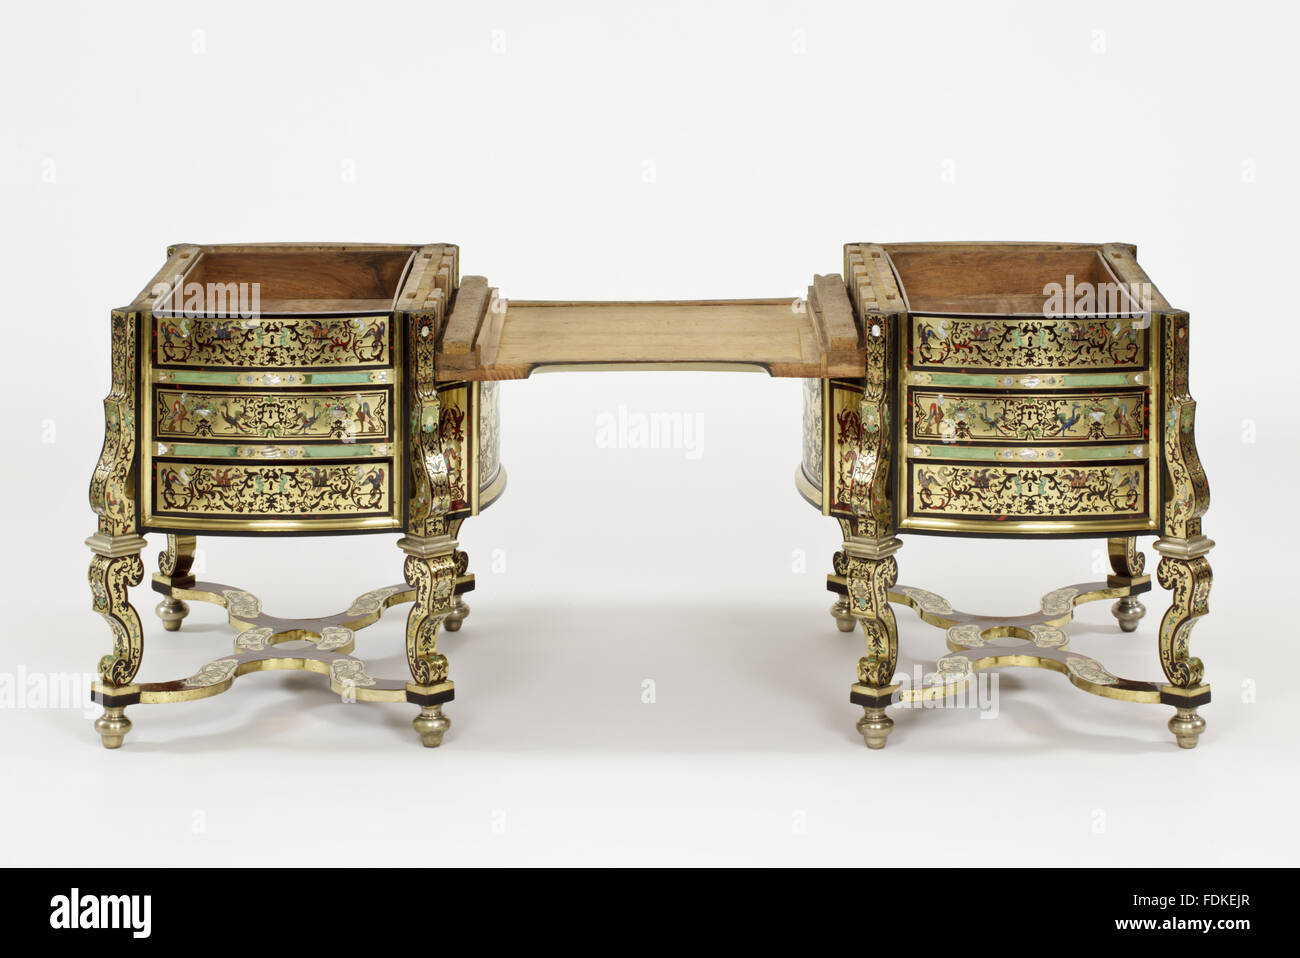 French desk bureau plat in the antique louis xv style ebay